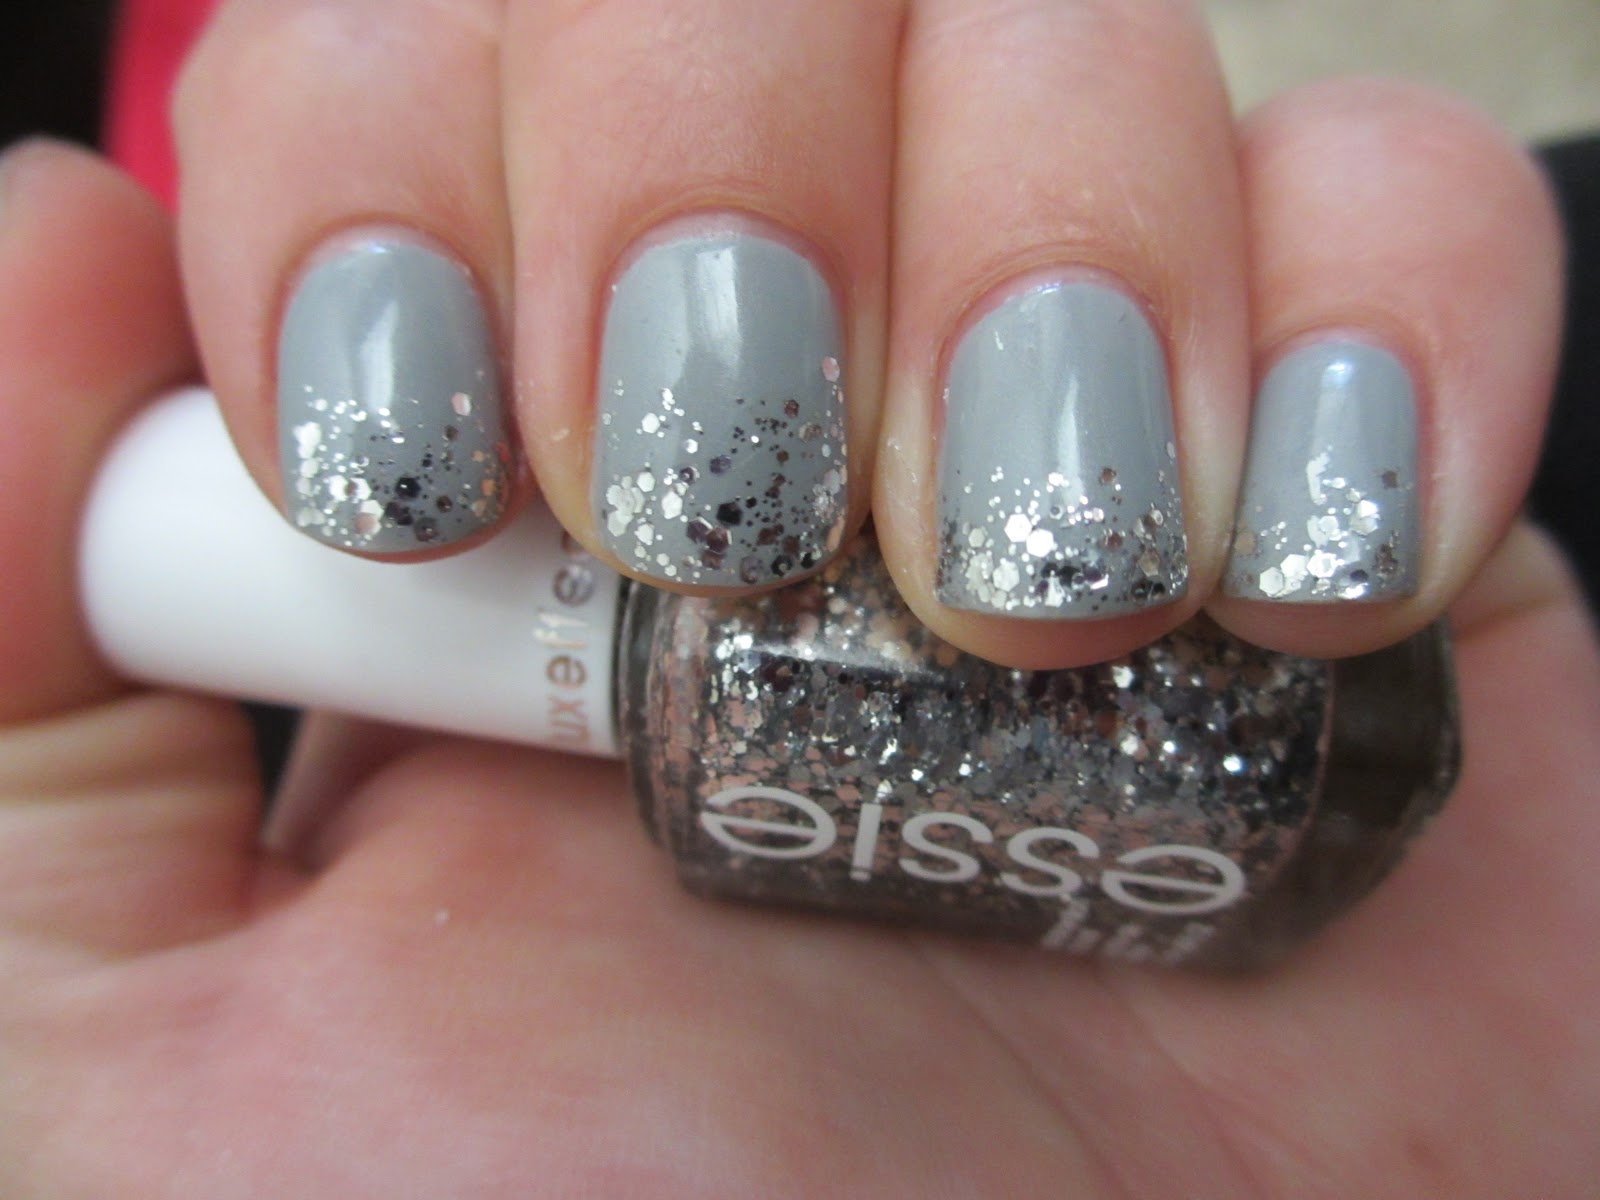 Essie Manicure Tools- HireAbility